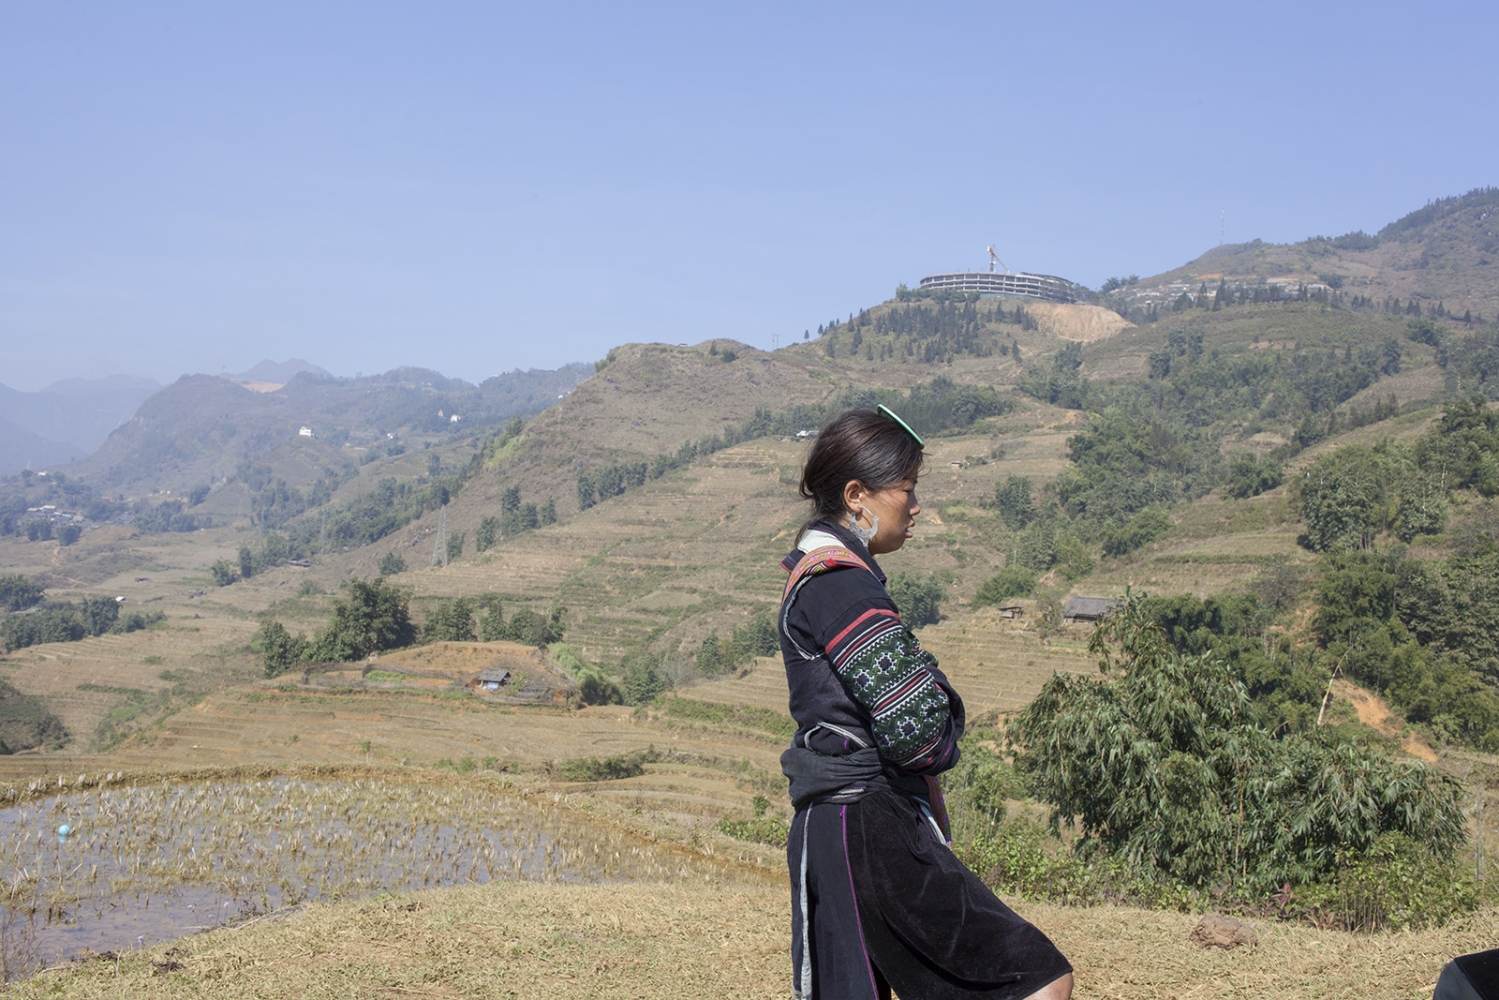 Black Hmong woman with the valley in the background. On the hill over her head, a big tourist hotel is under construction.